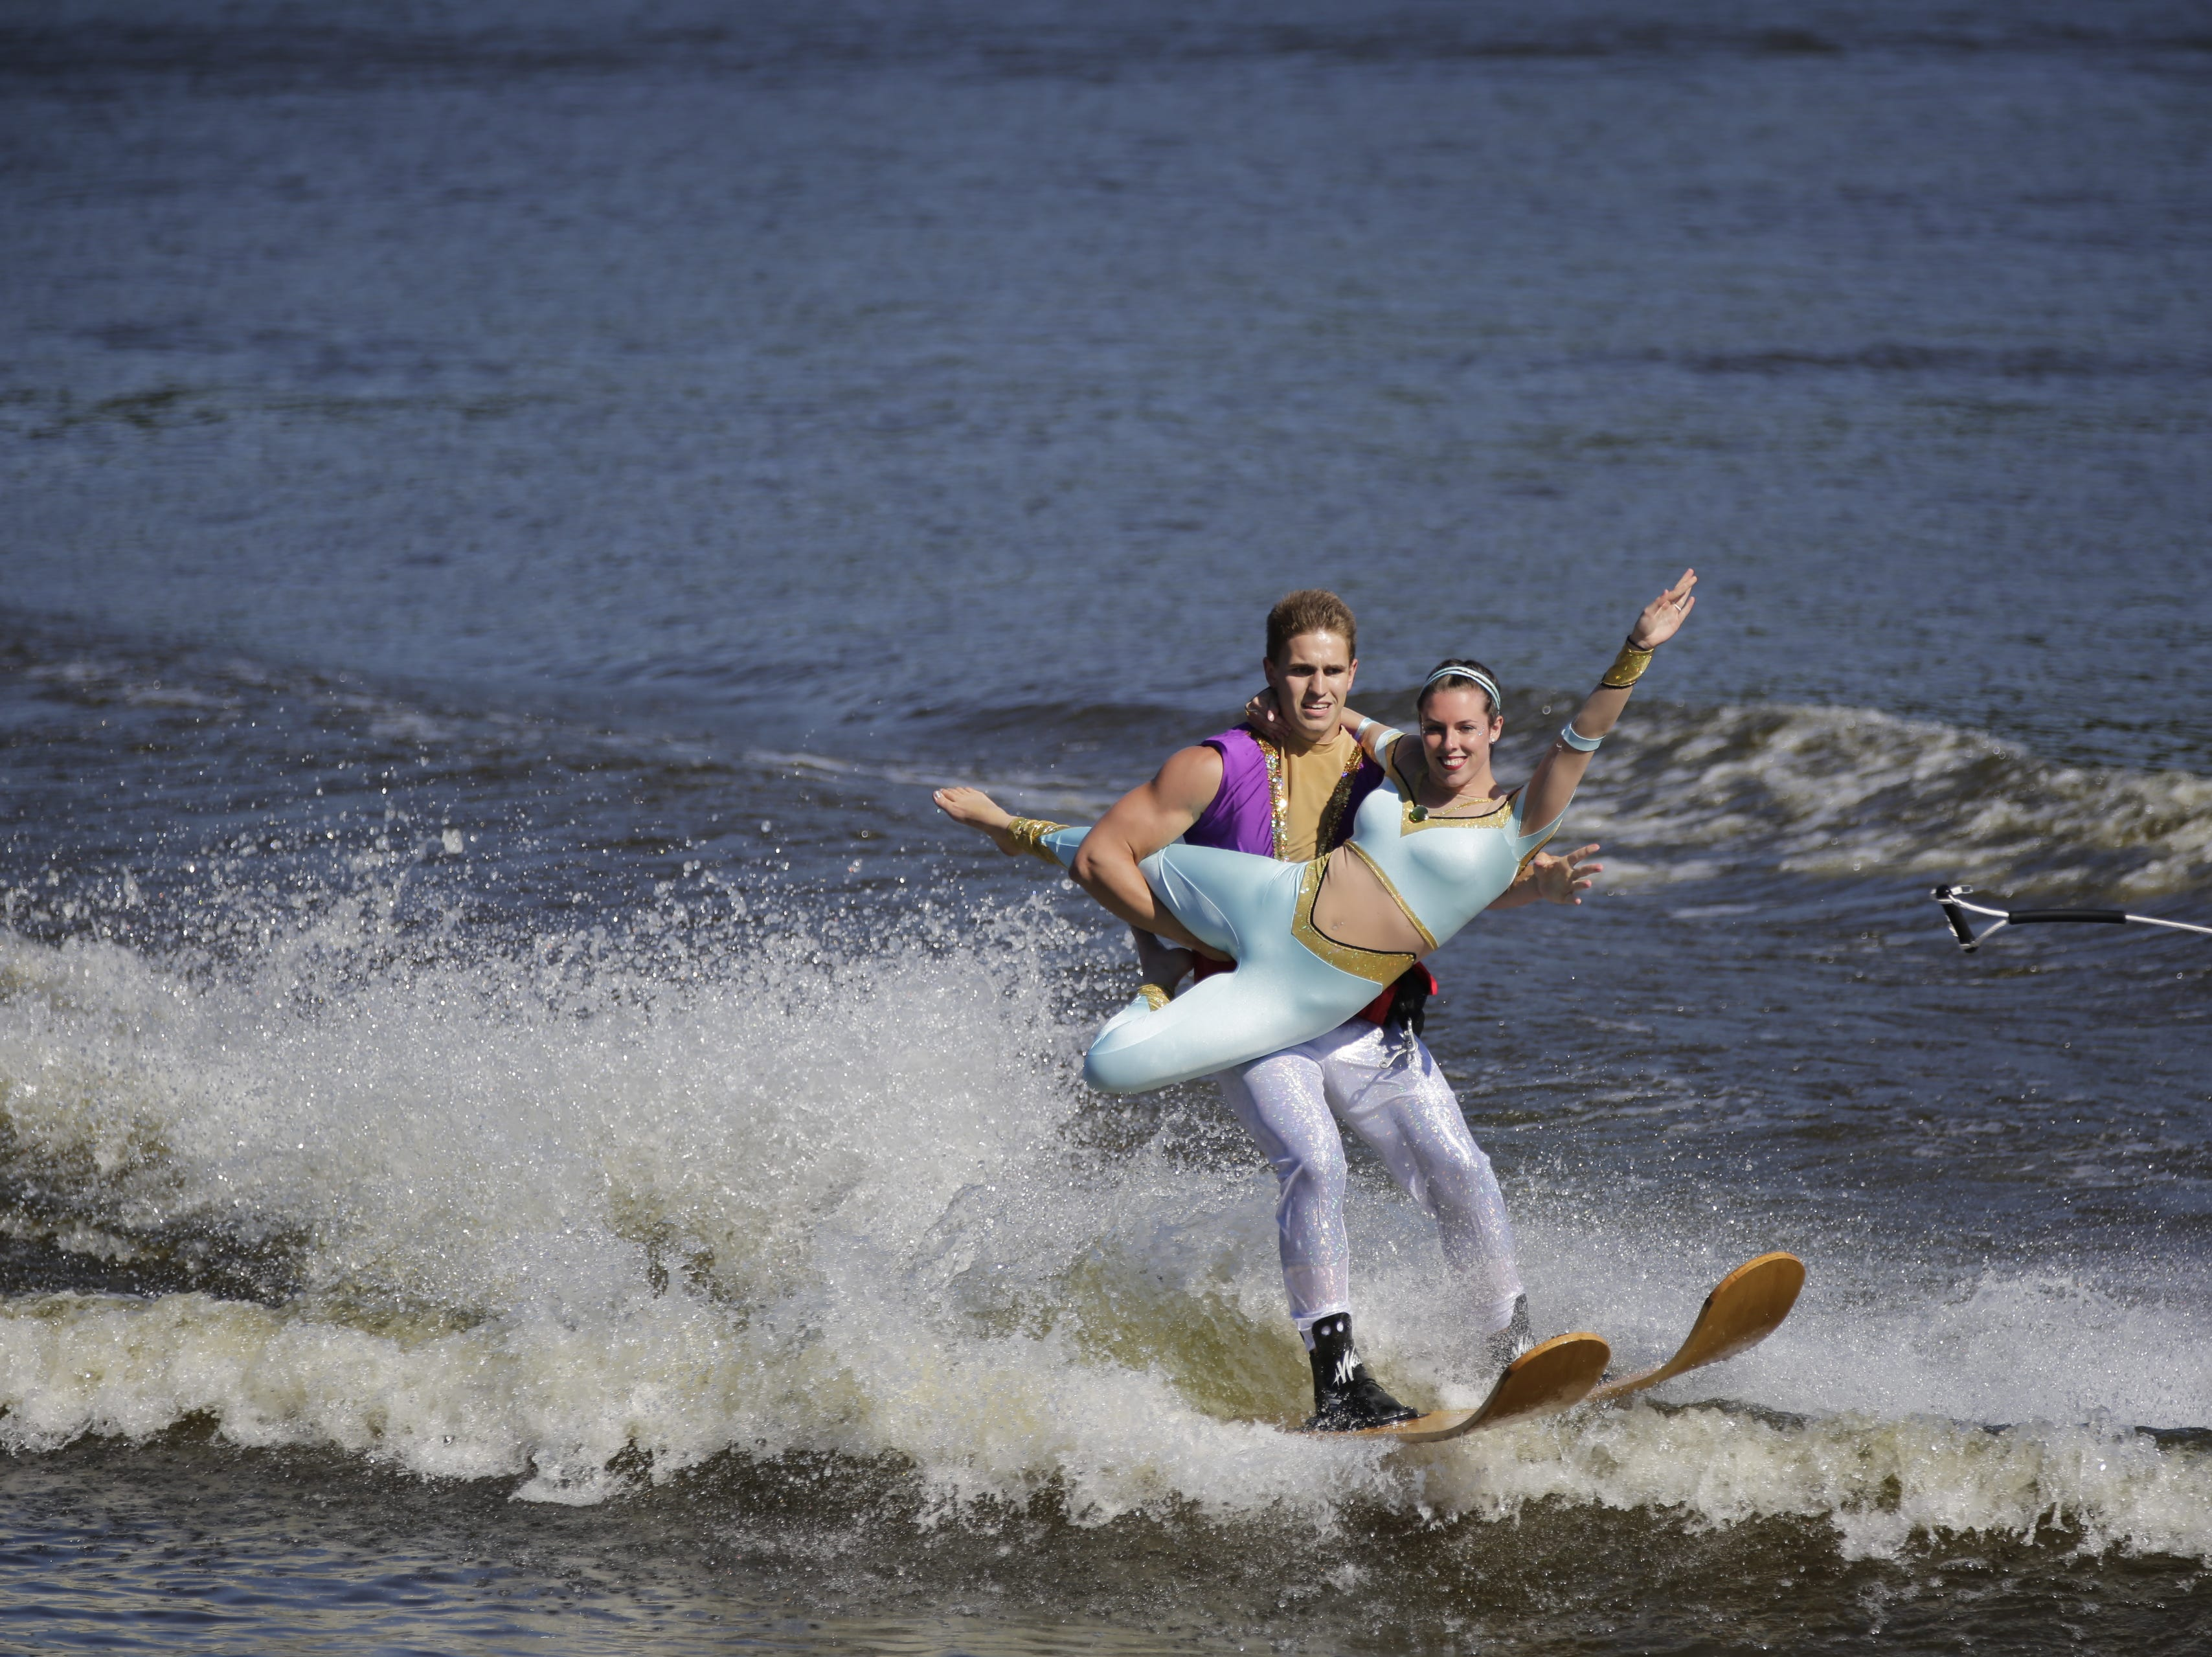 Jack Misina and Kate Draeger compete in the doubles category during the Wisconsin State Water Ski Show Championships on Lake Wazeecha in Kellner Thursday, July 19, 2018.